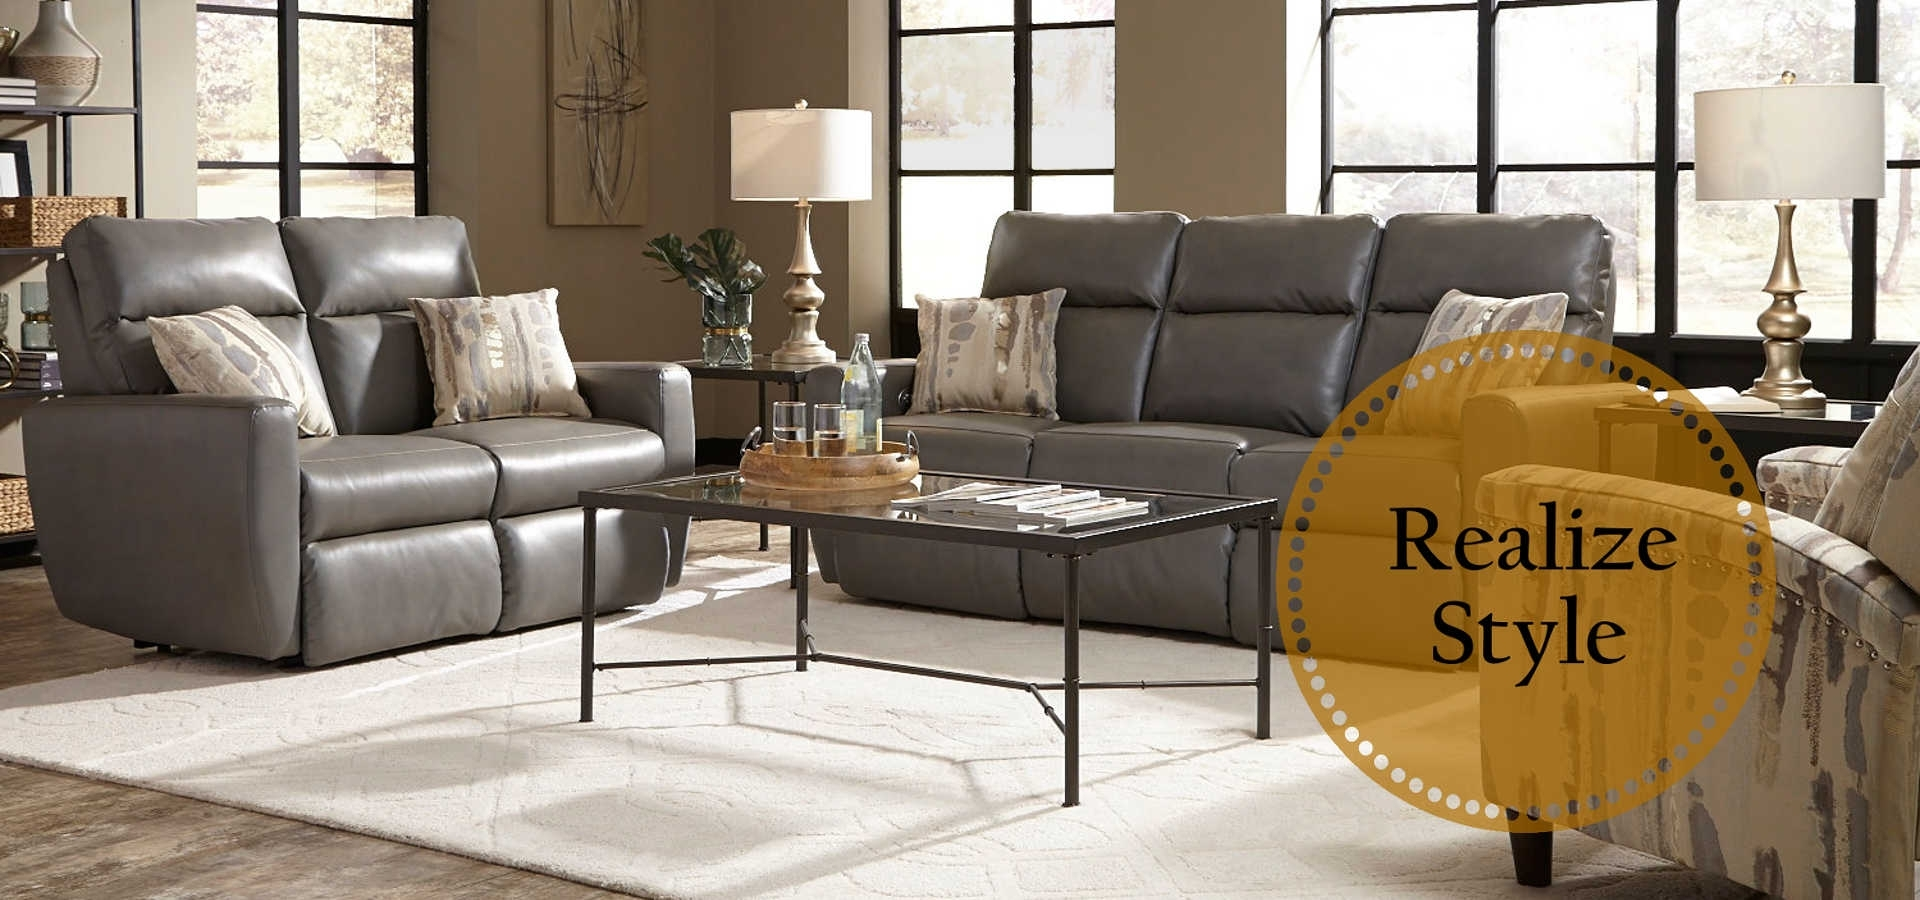 American-Made Motion Furniture & Reclining Living Room Sets regarding Travis Cognac Leather 6 Piece Power Reclining Sectionals With Power Headrest & Usb (Image 5 of 30)